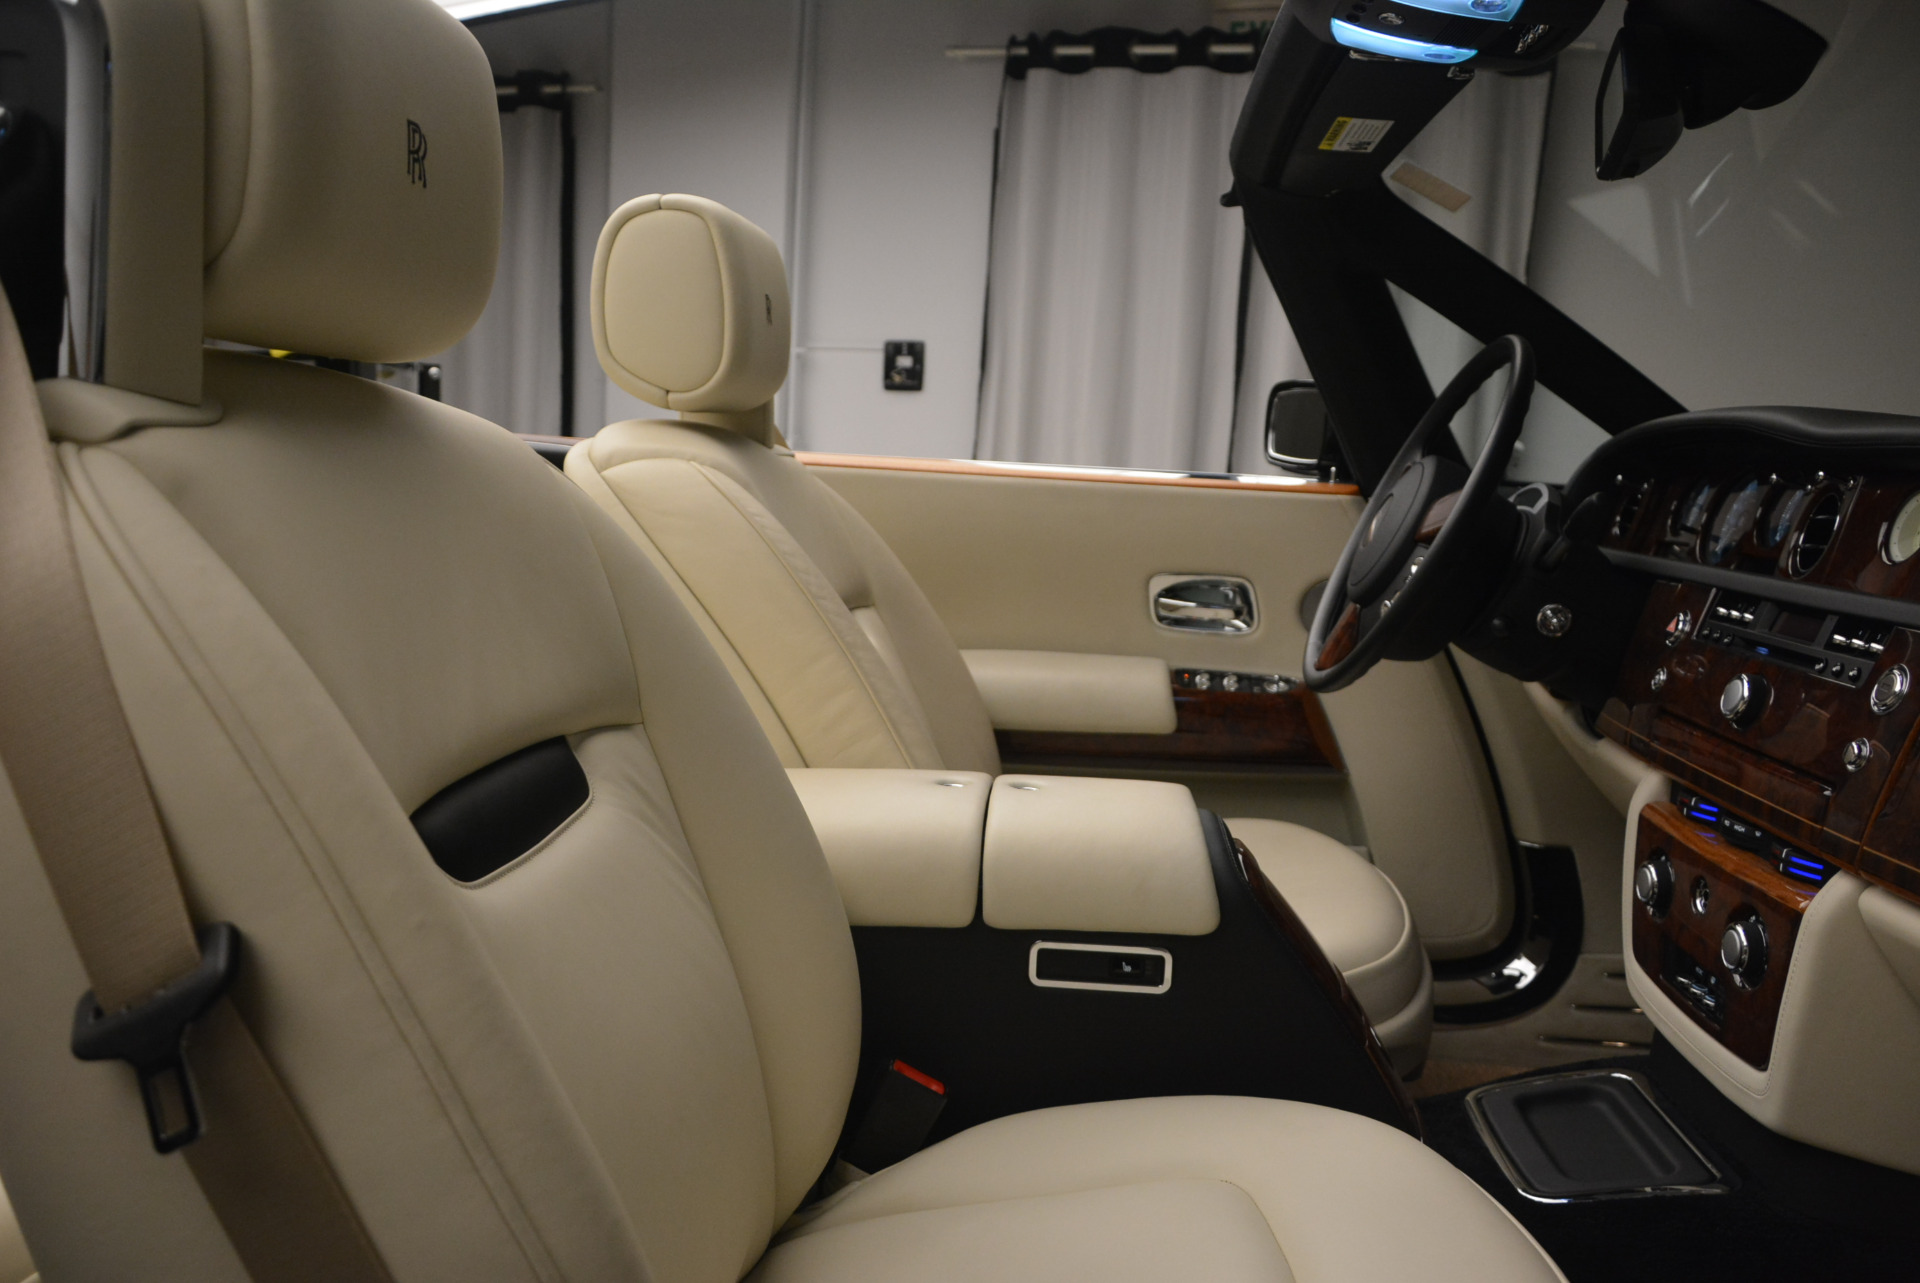 Used 2009 Rolls-Royce Phantom Drophead Coupe  For Sale In Westport, CT 1792_p39